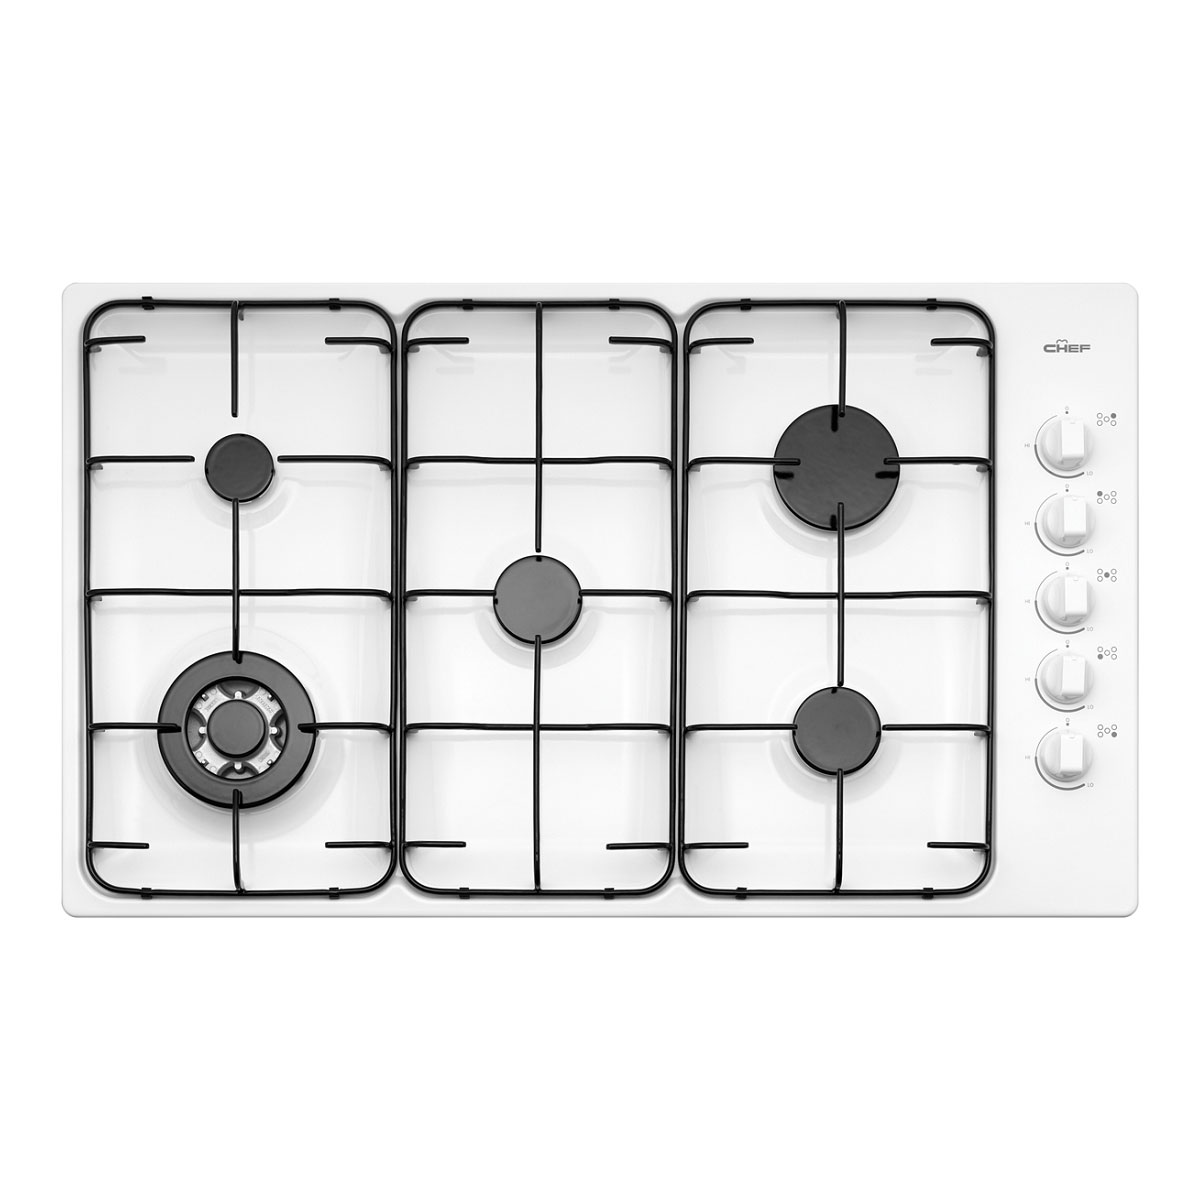 Chef Gas Cooktop GHC937W